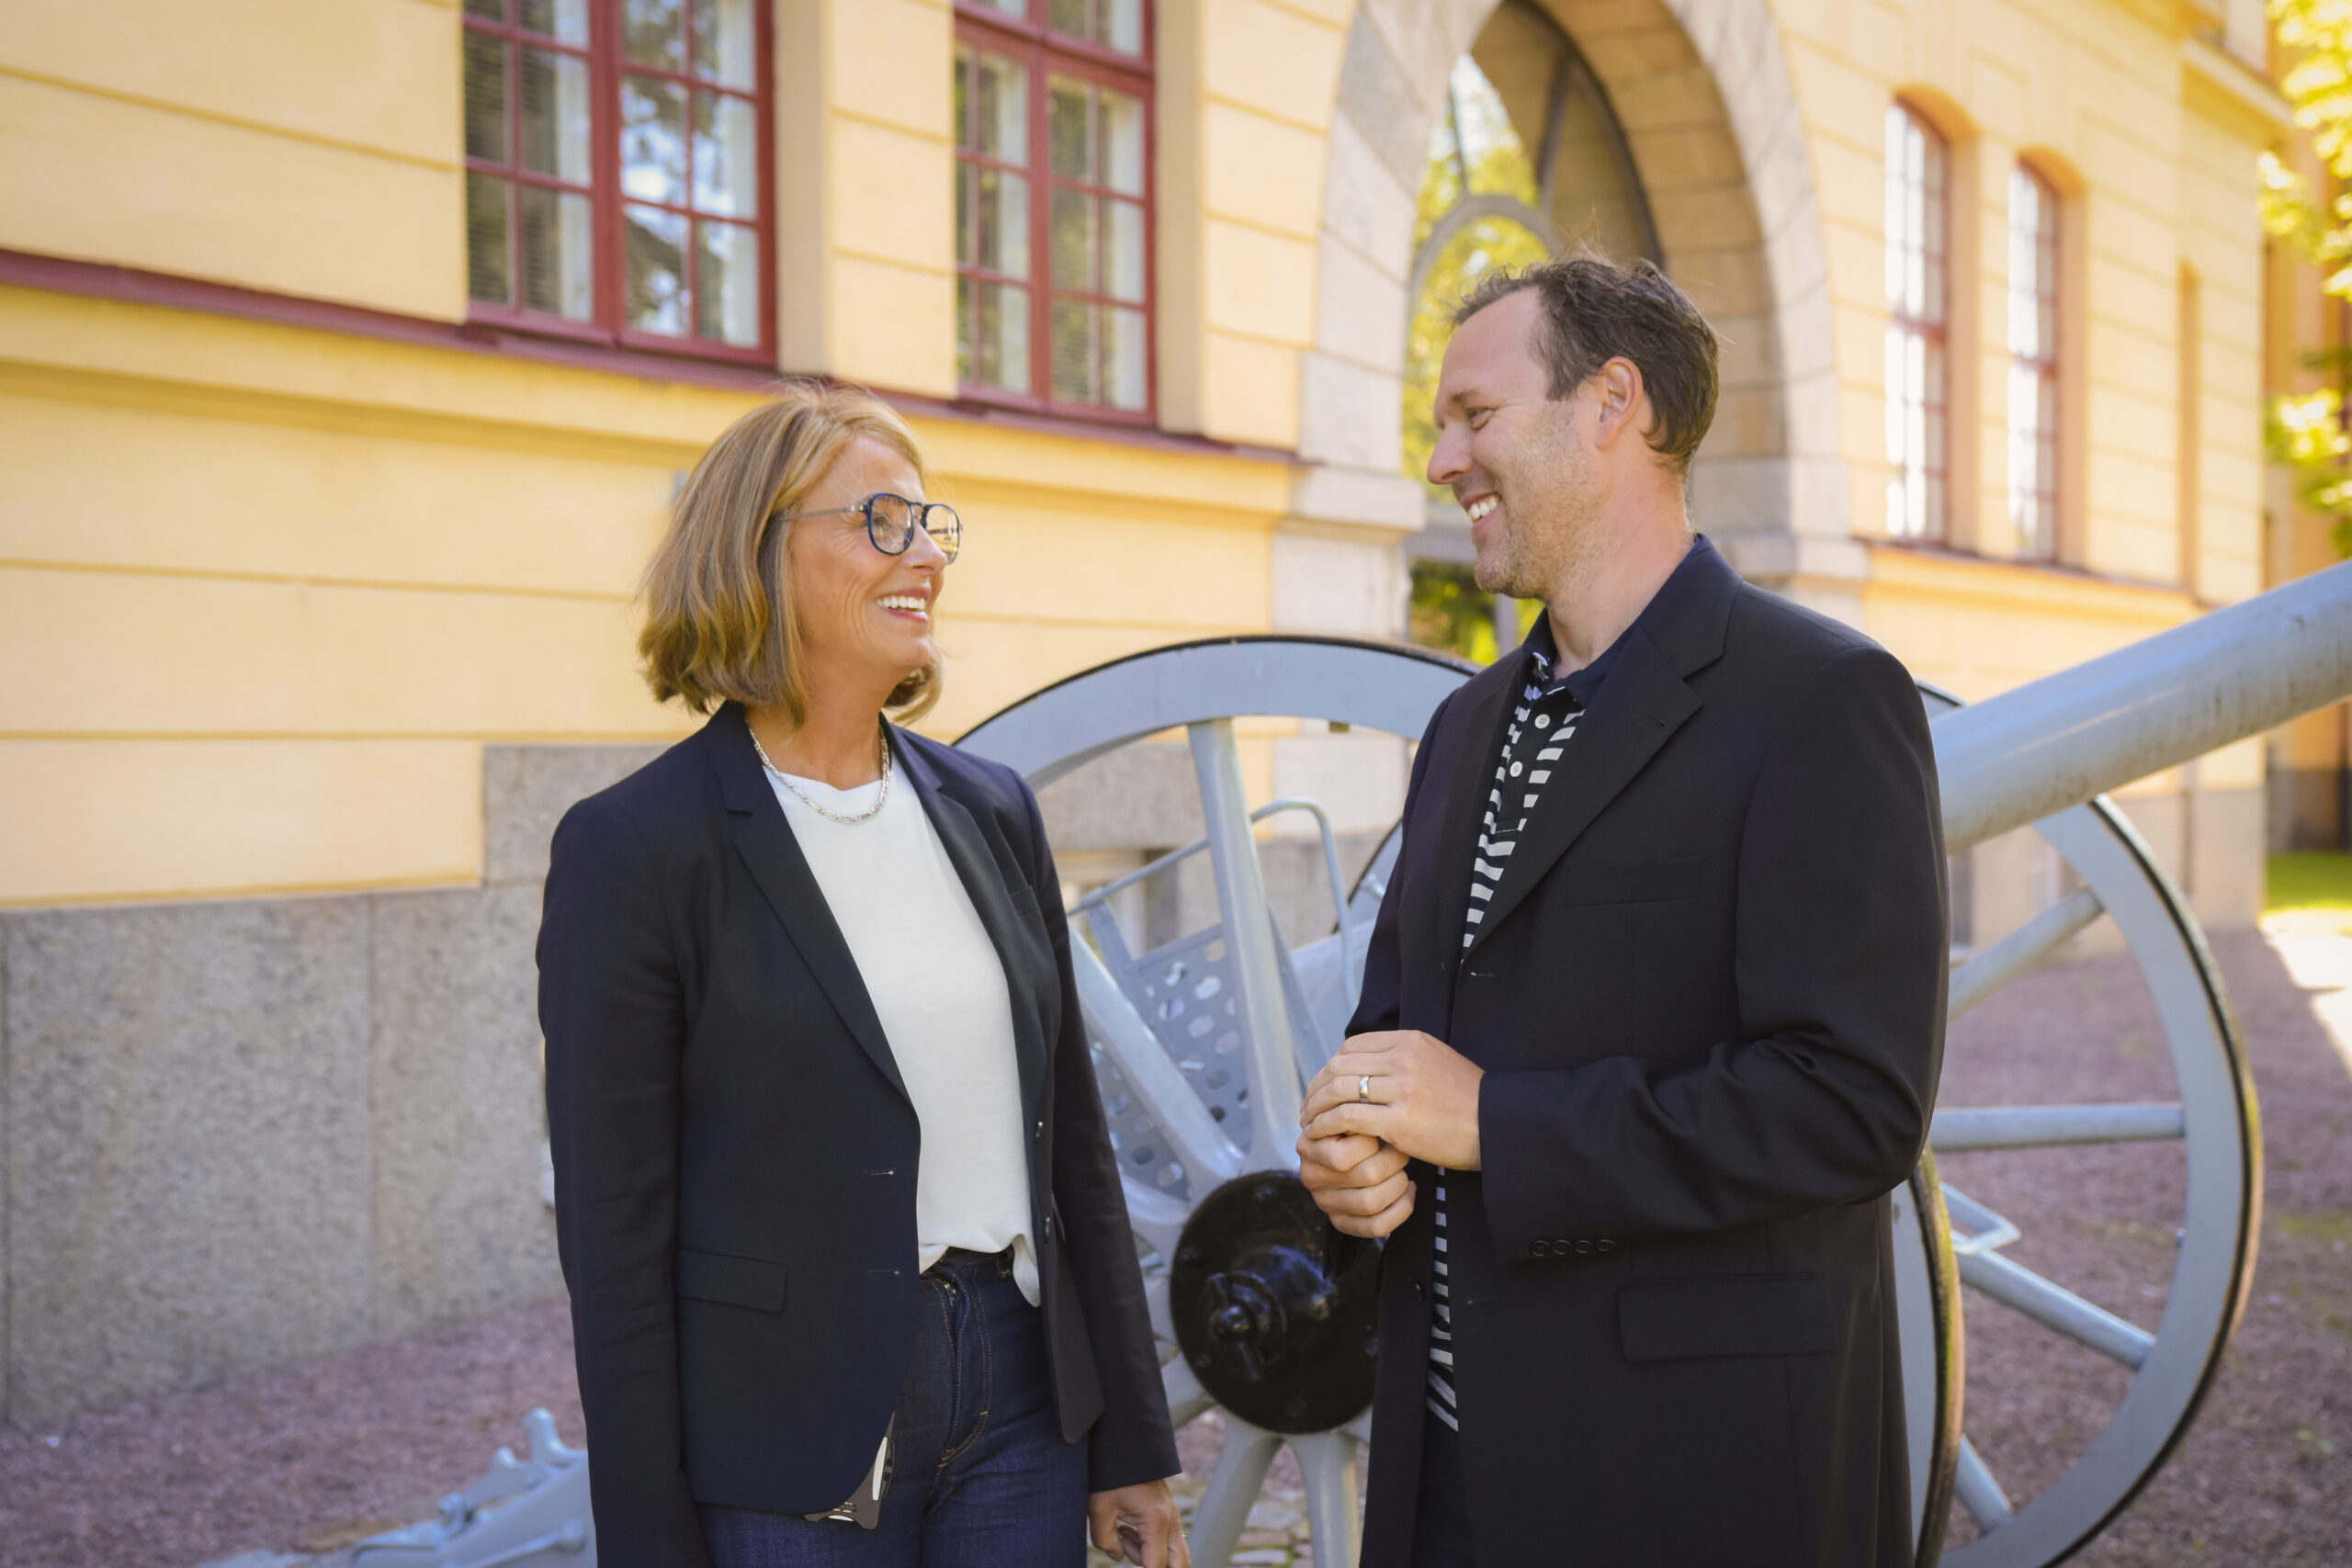 Maria Englund and Anders Millerhovf